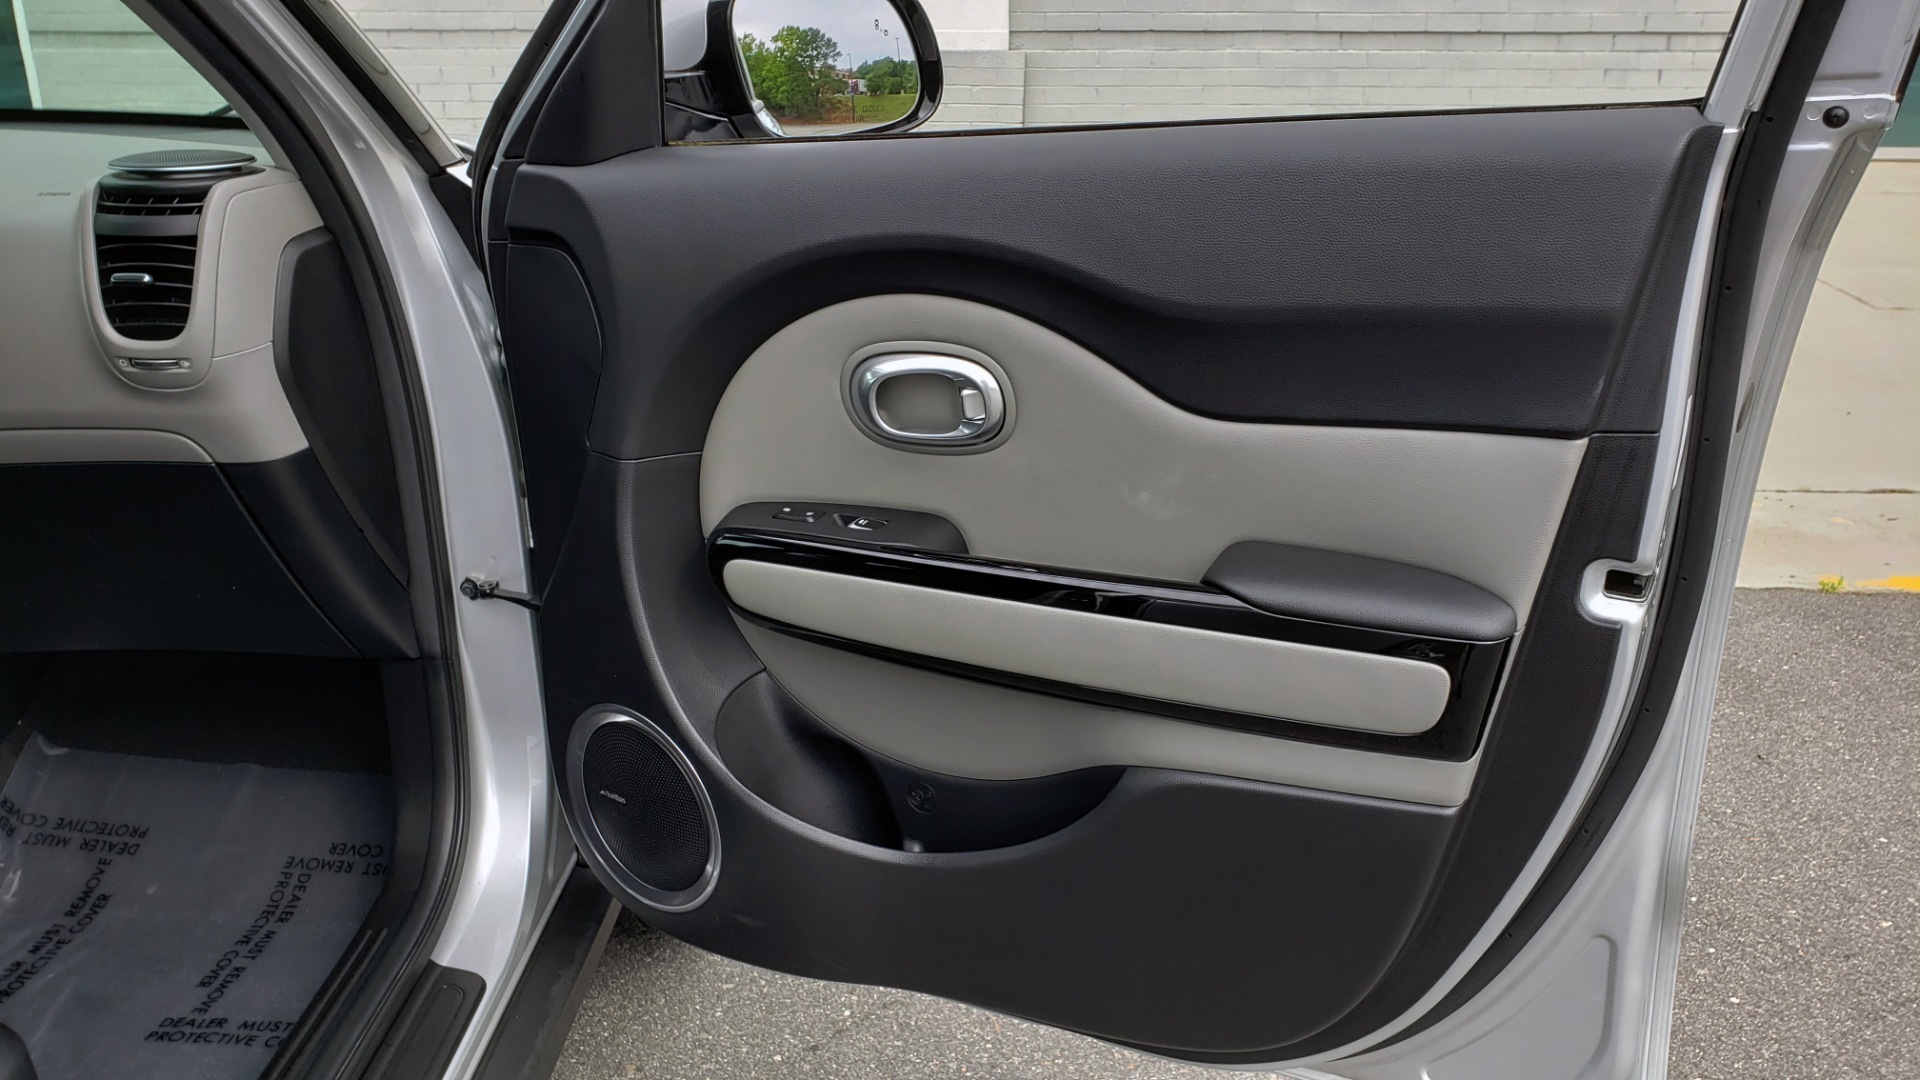 Used 2017 Kia SOUL PLUS / NAV / SUNROOF / LEATHER / HTD STS / REARVIEW for sale $16,995 at Formula Imports in Charlotte NC 28227 57